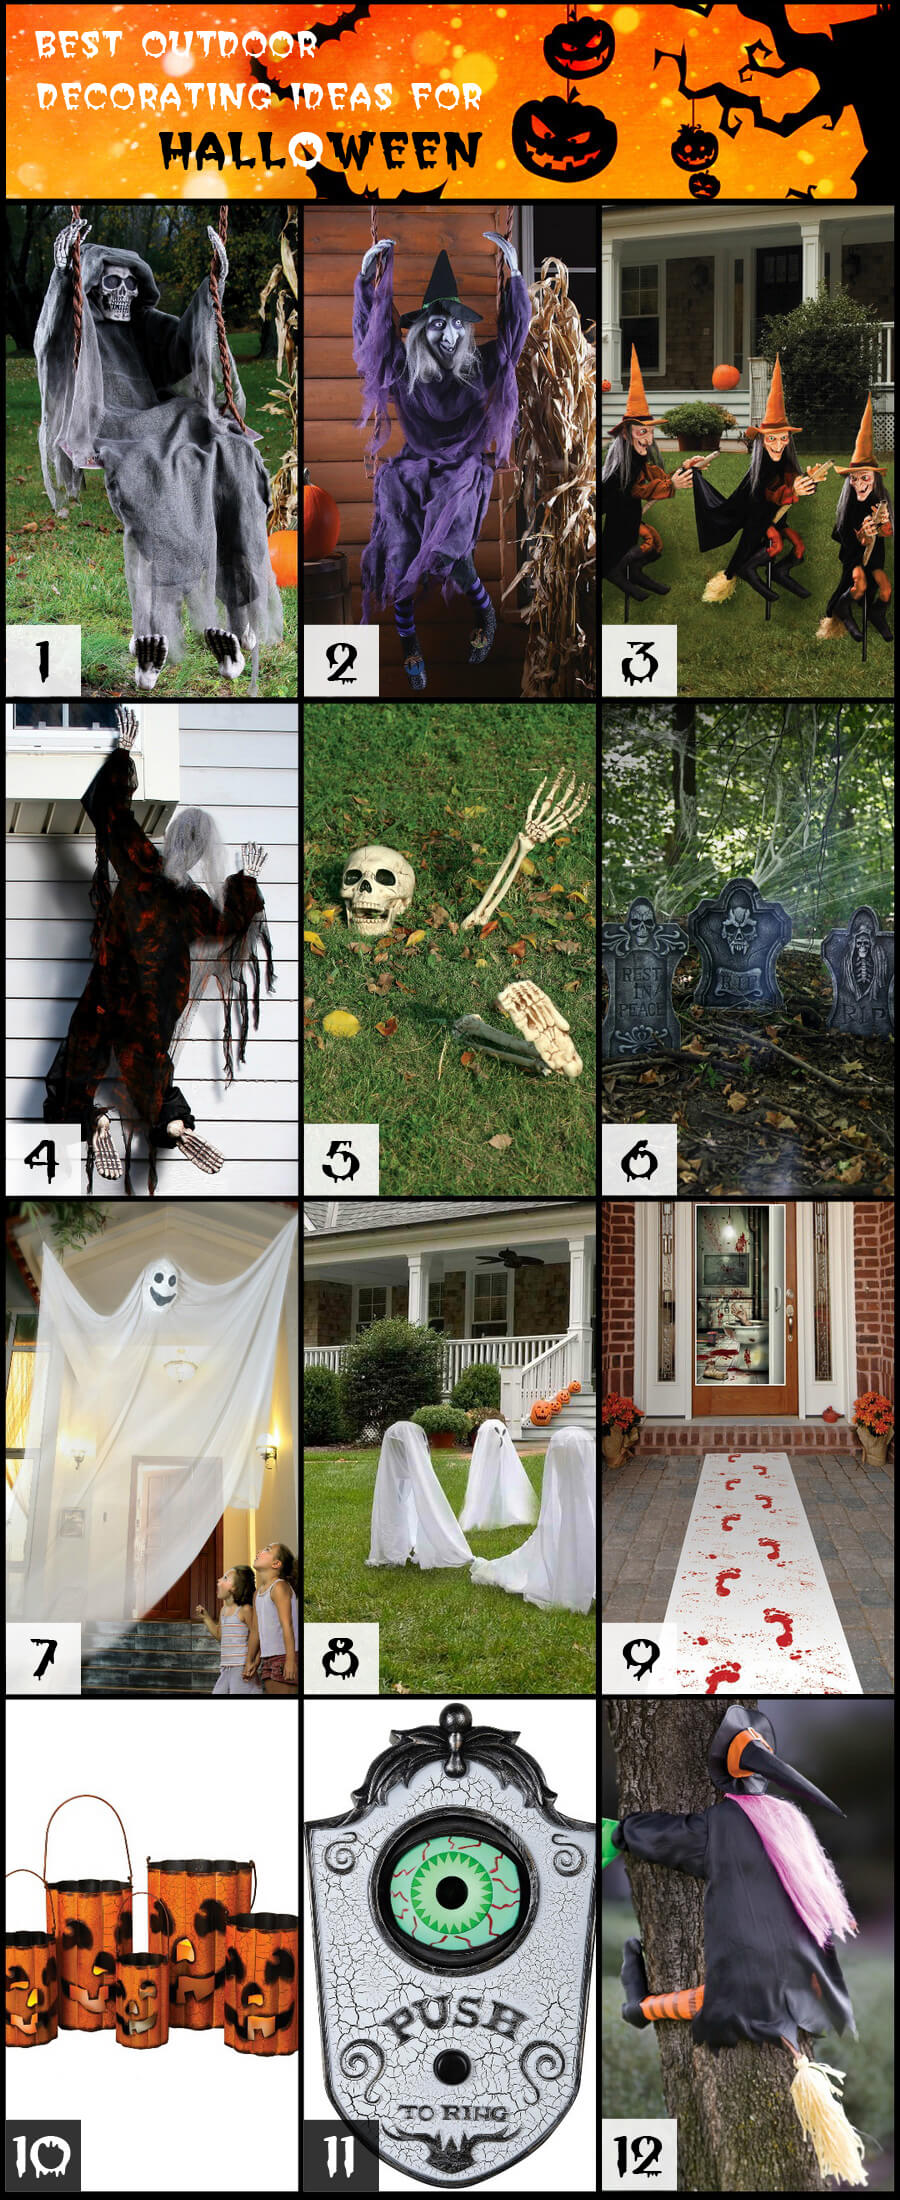 12 best outdoor decorating ideas for halloween